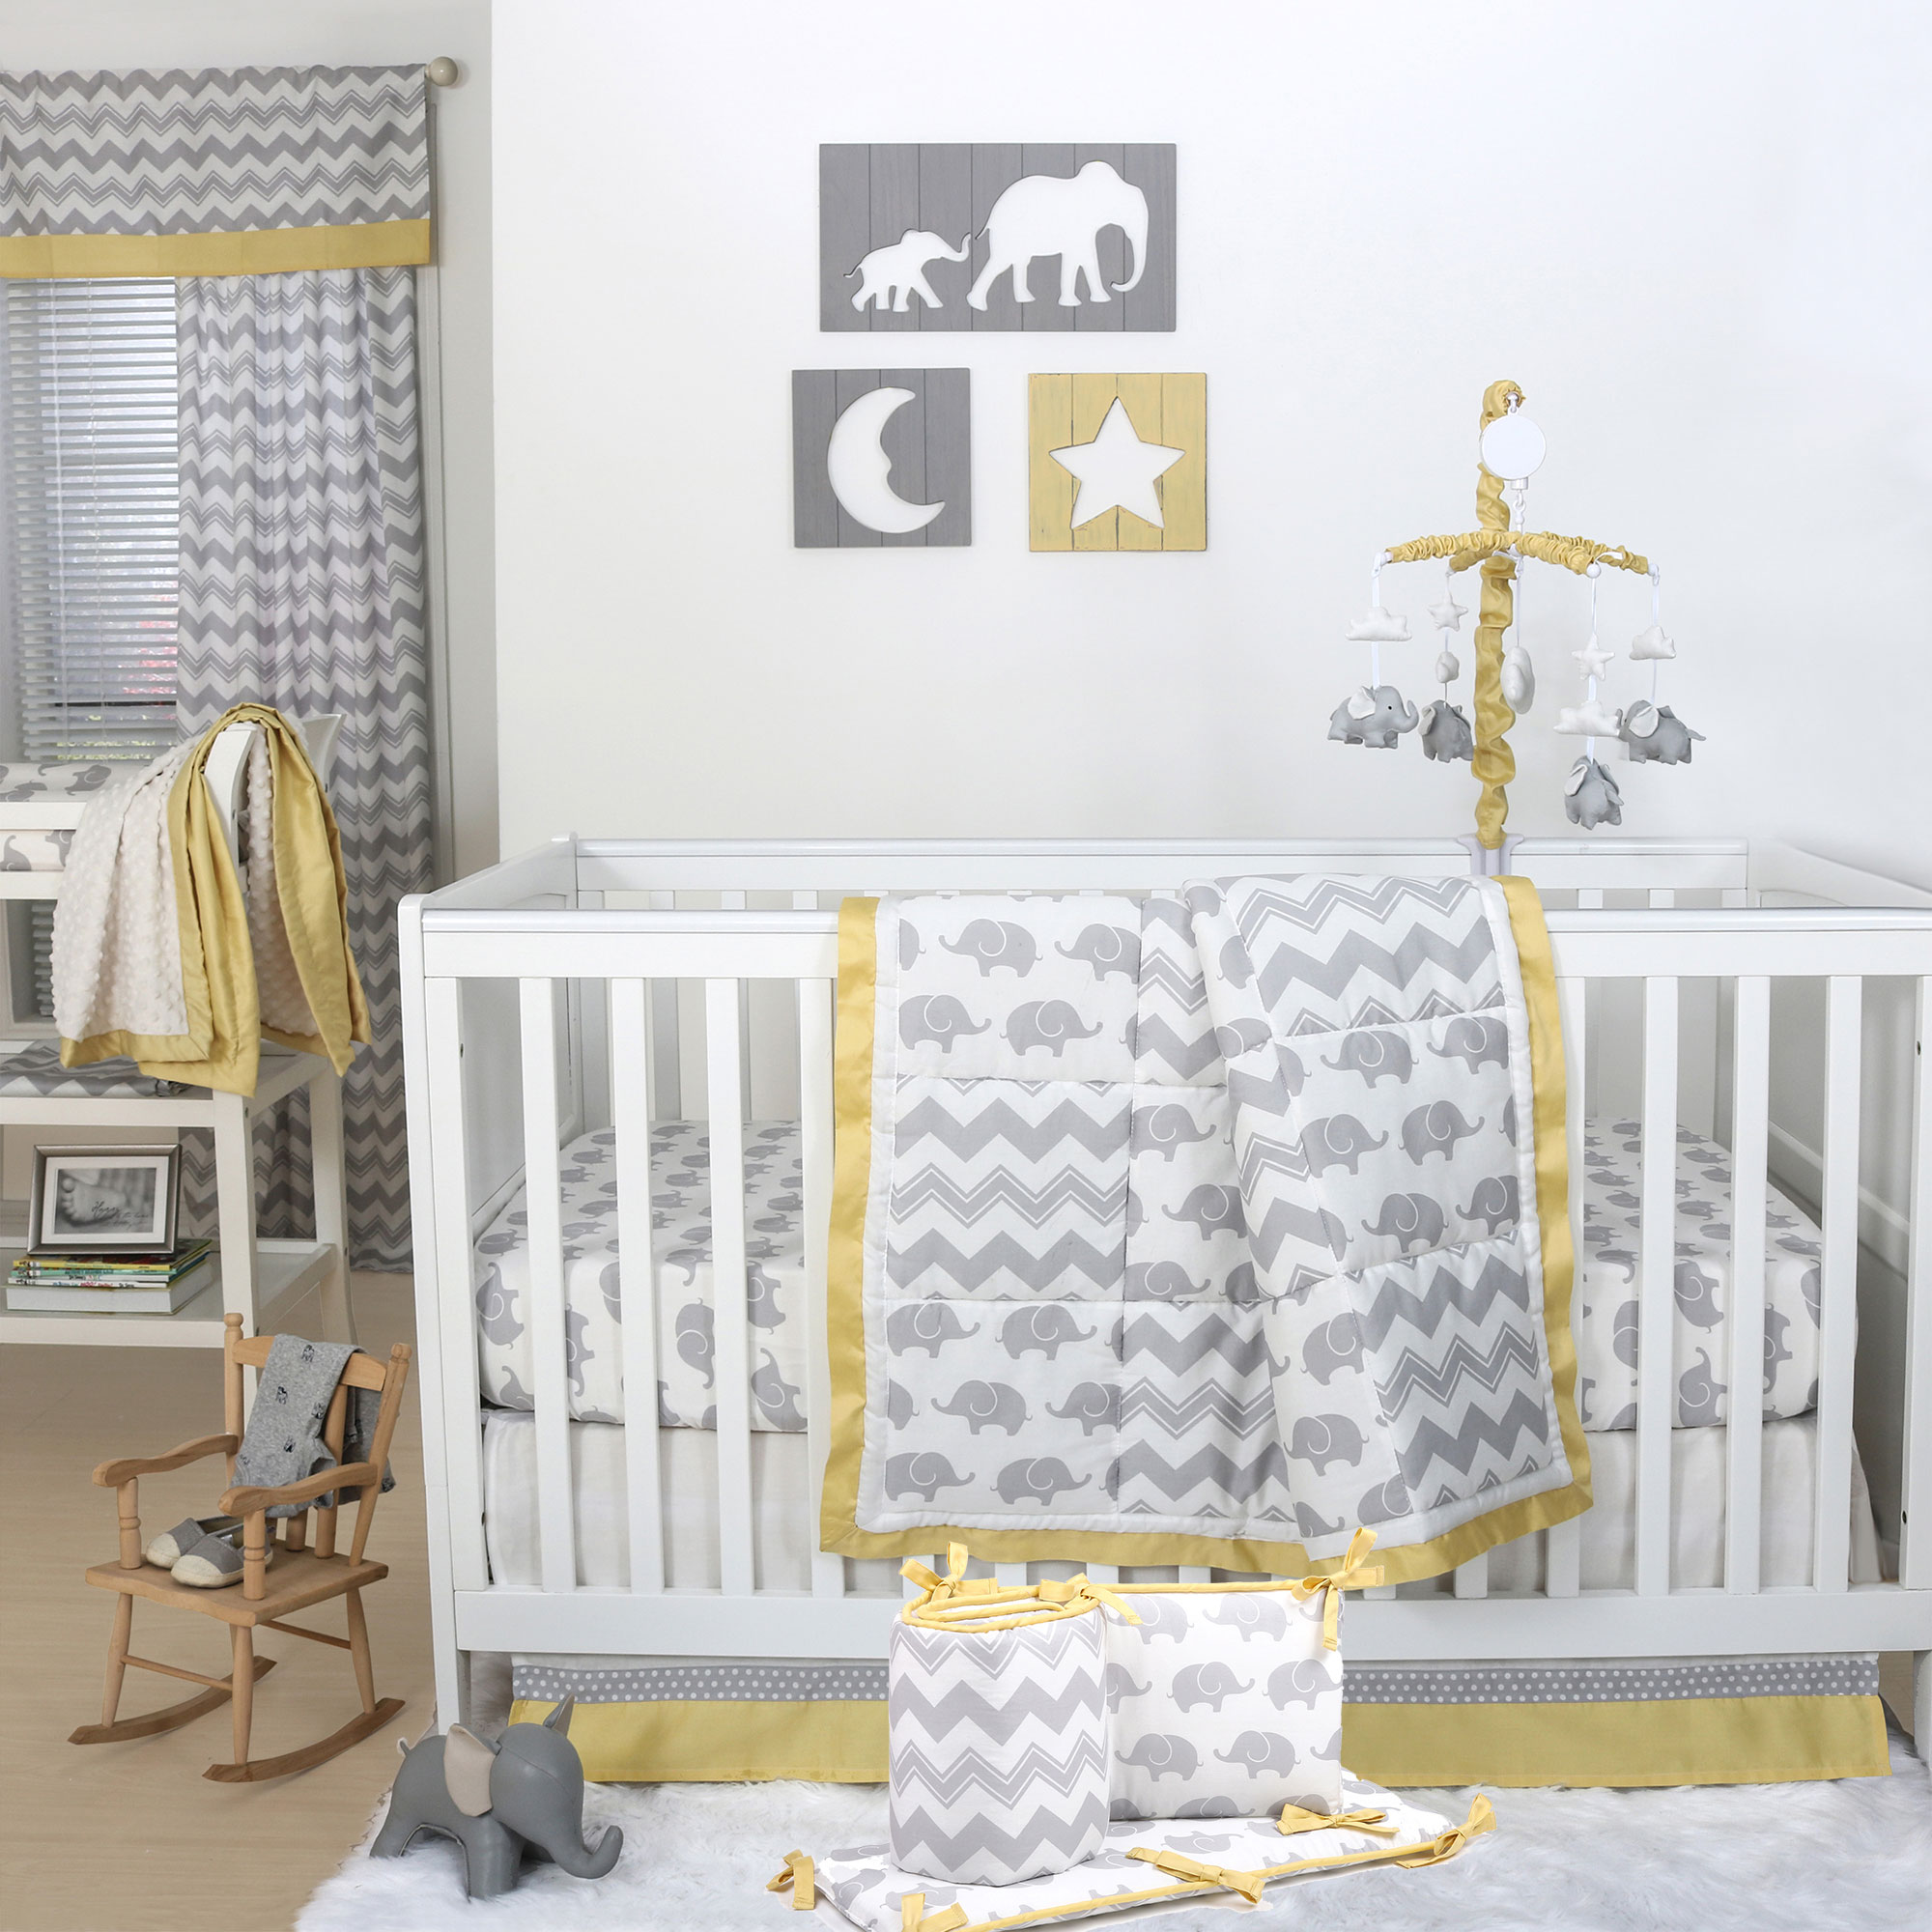 The Peanut Shell 5 Piece Baby Crib Bedding Set - Grey Elephant and Zig Zag with Yellow Trim - 100% Cotton Quilt, Bumper, Dust Ruffle, Fitted Sheet, and Mobile